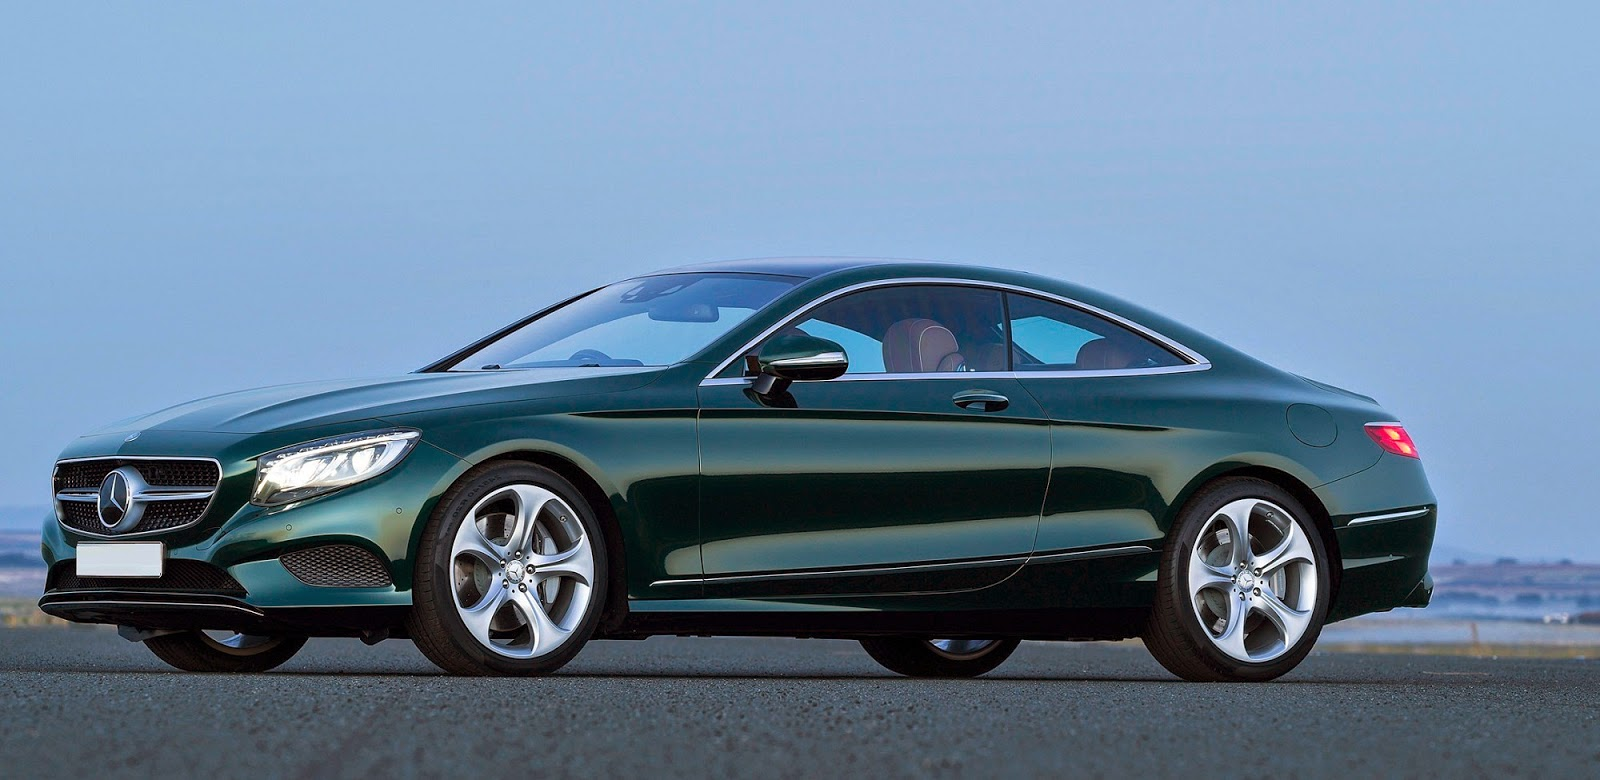 Uk pricing released for mercedes benz s class coupe car for Mercedes benz s class coupe price